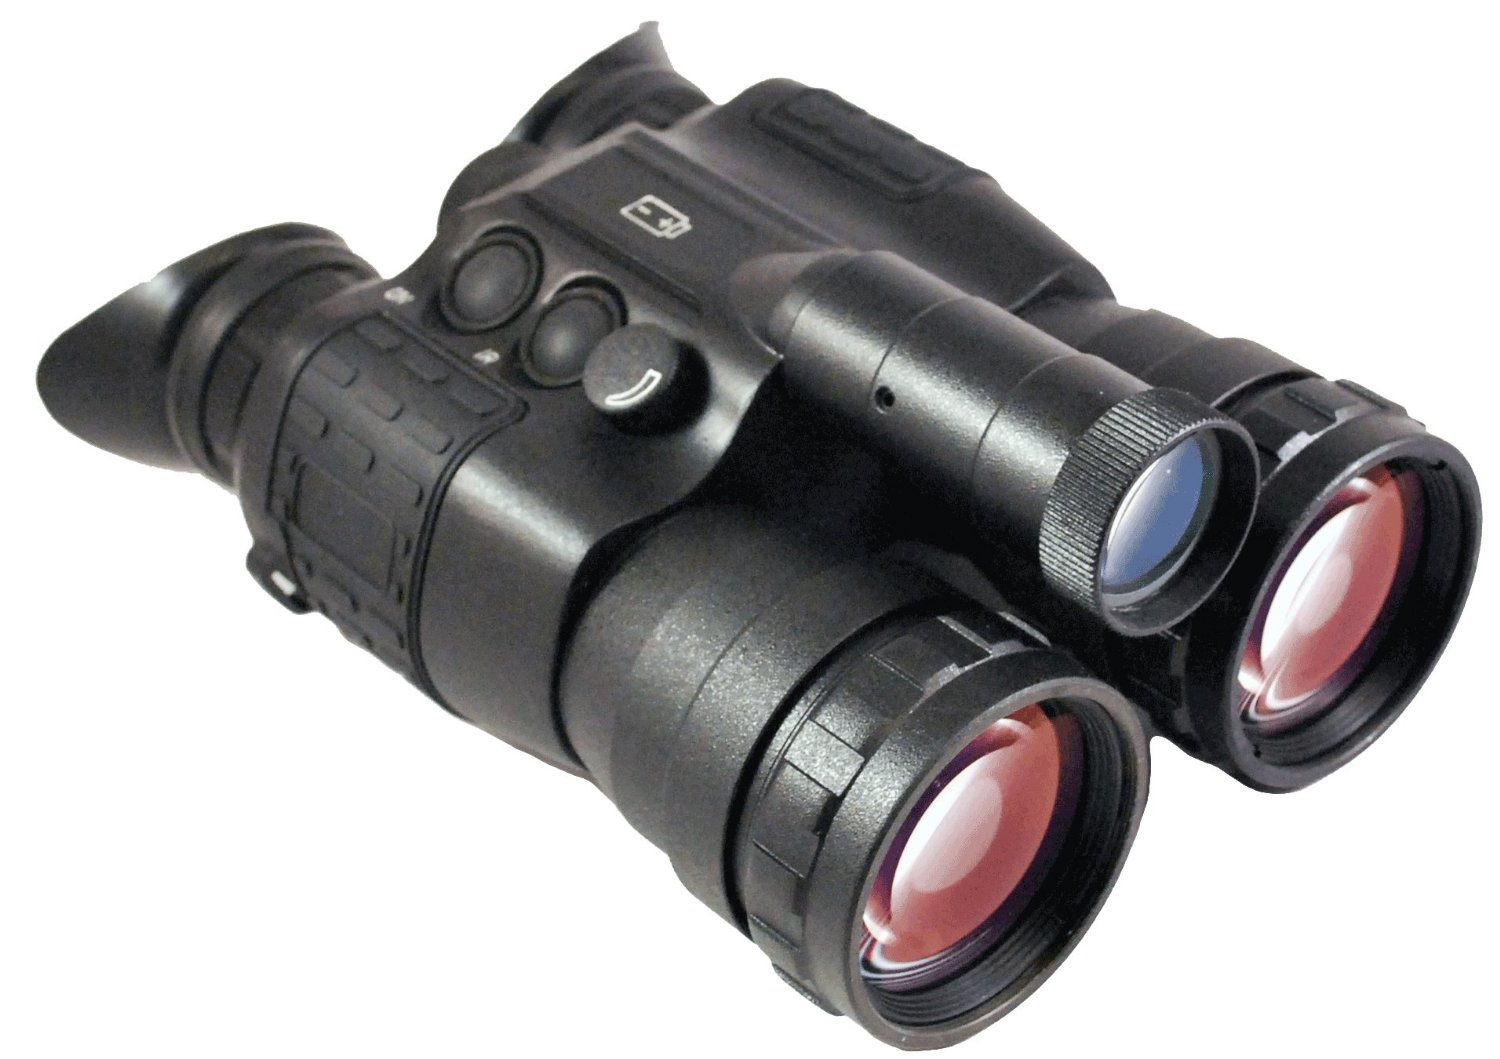 Luna Optics 3x42 Premium Night Vision Binocular